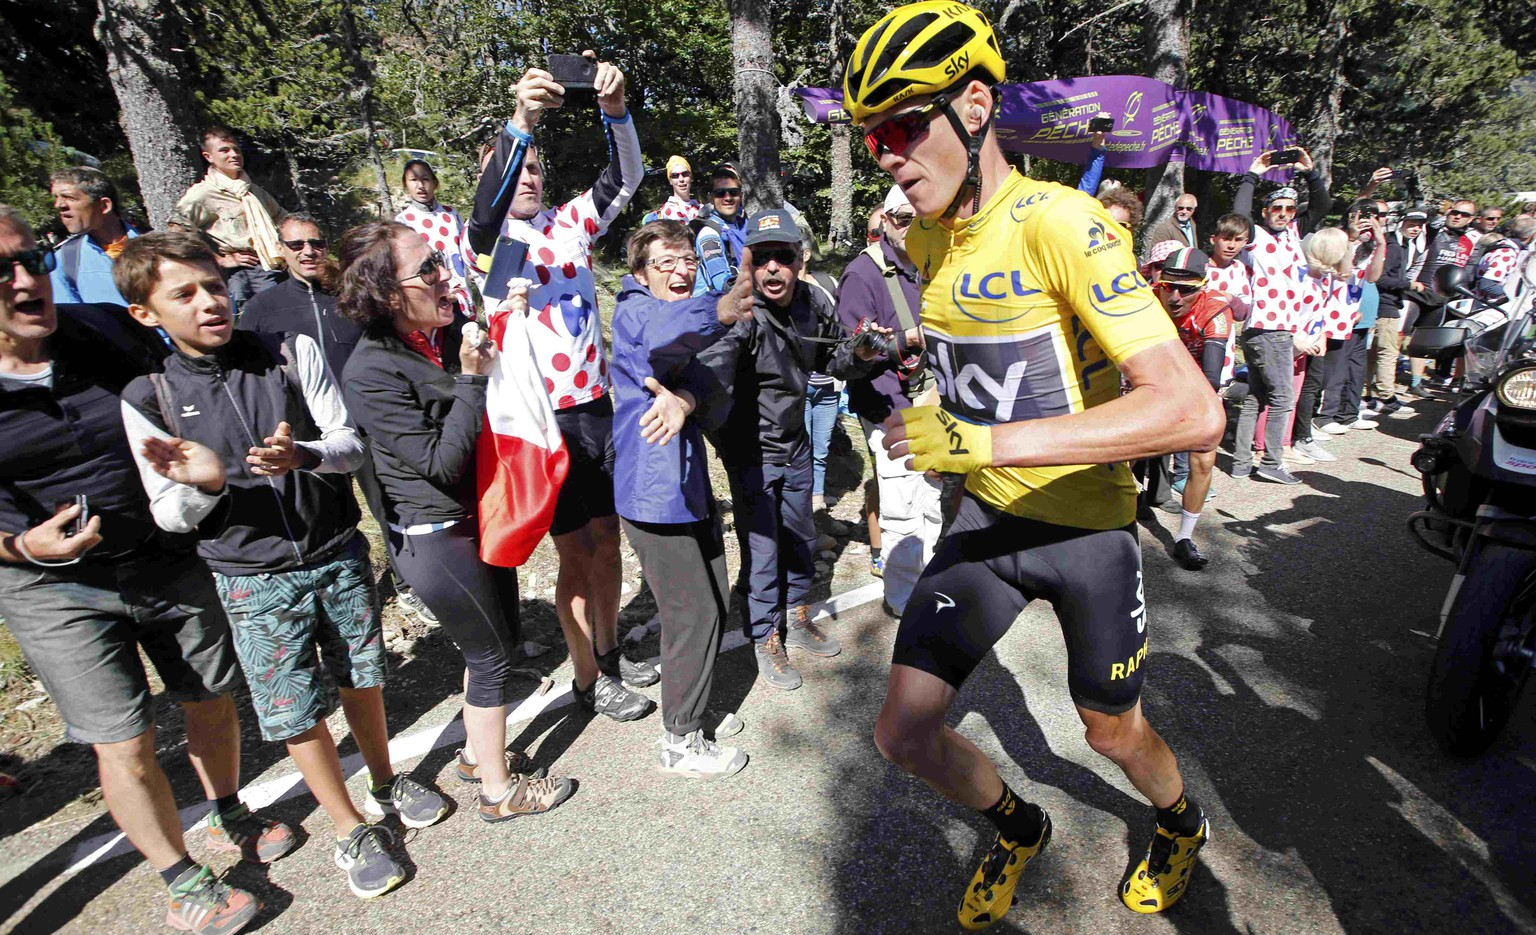 Cycling - The Tour de France cycling race - The 178-km (110.6 miles) Stage 12 from Montpellier to Chalet-Reynard - 14/07/2016 - Yellow jersey leader Team Sky rider Chris Froome of Britain runs on the road after a fall.    REUTERS/Jean-Paul Pelissier